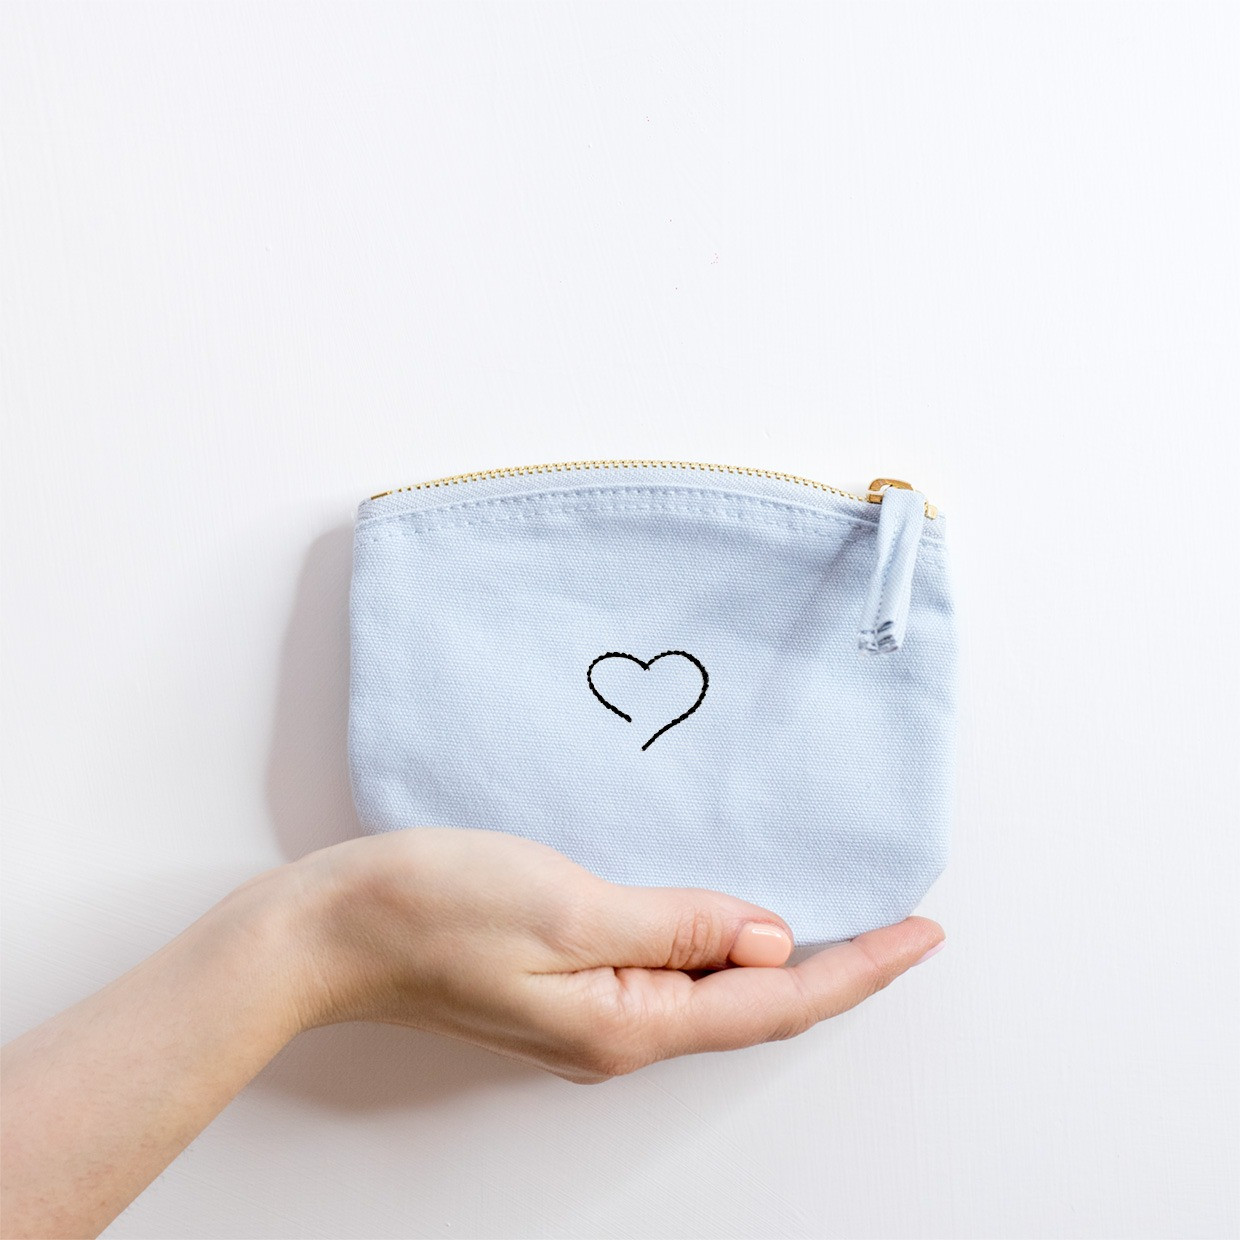 The ZIPPED POUCH S - Heart essential